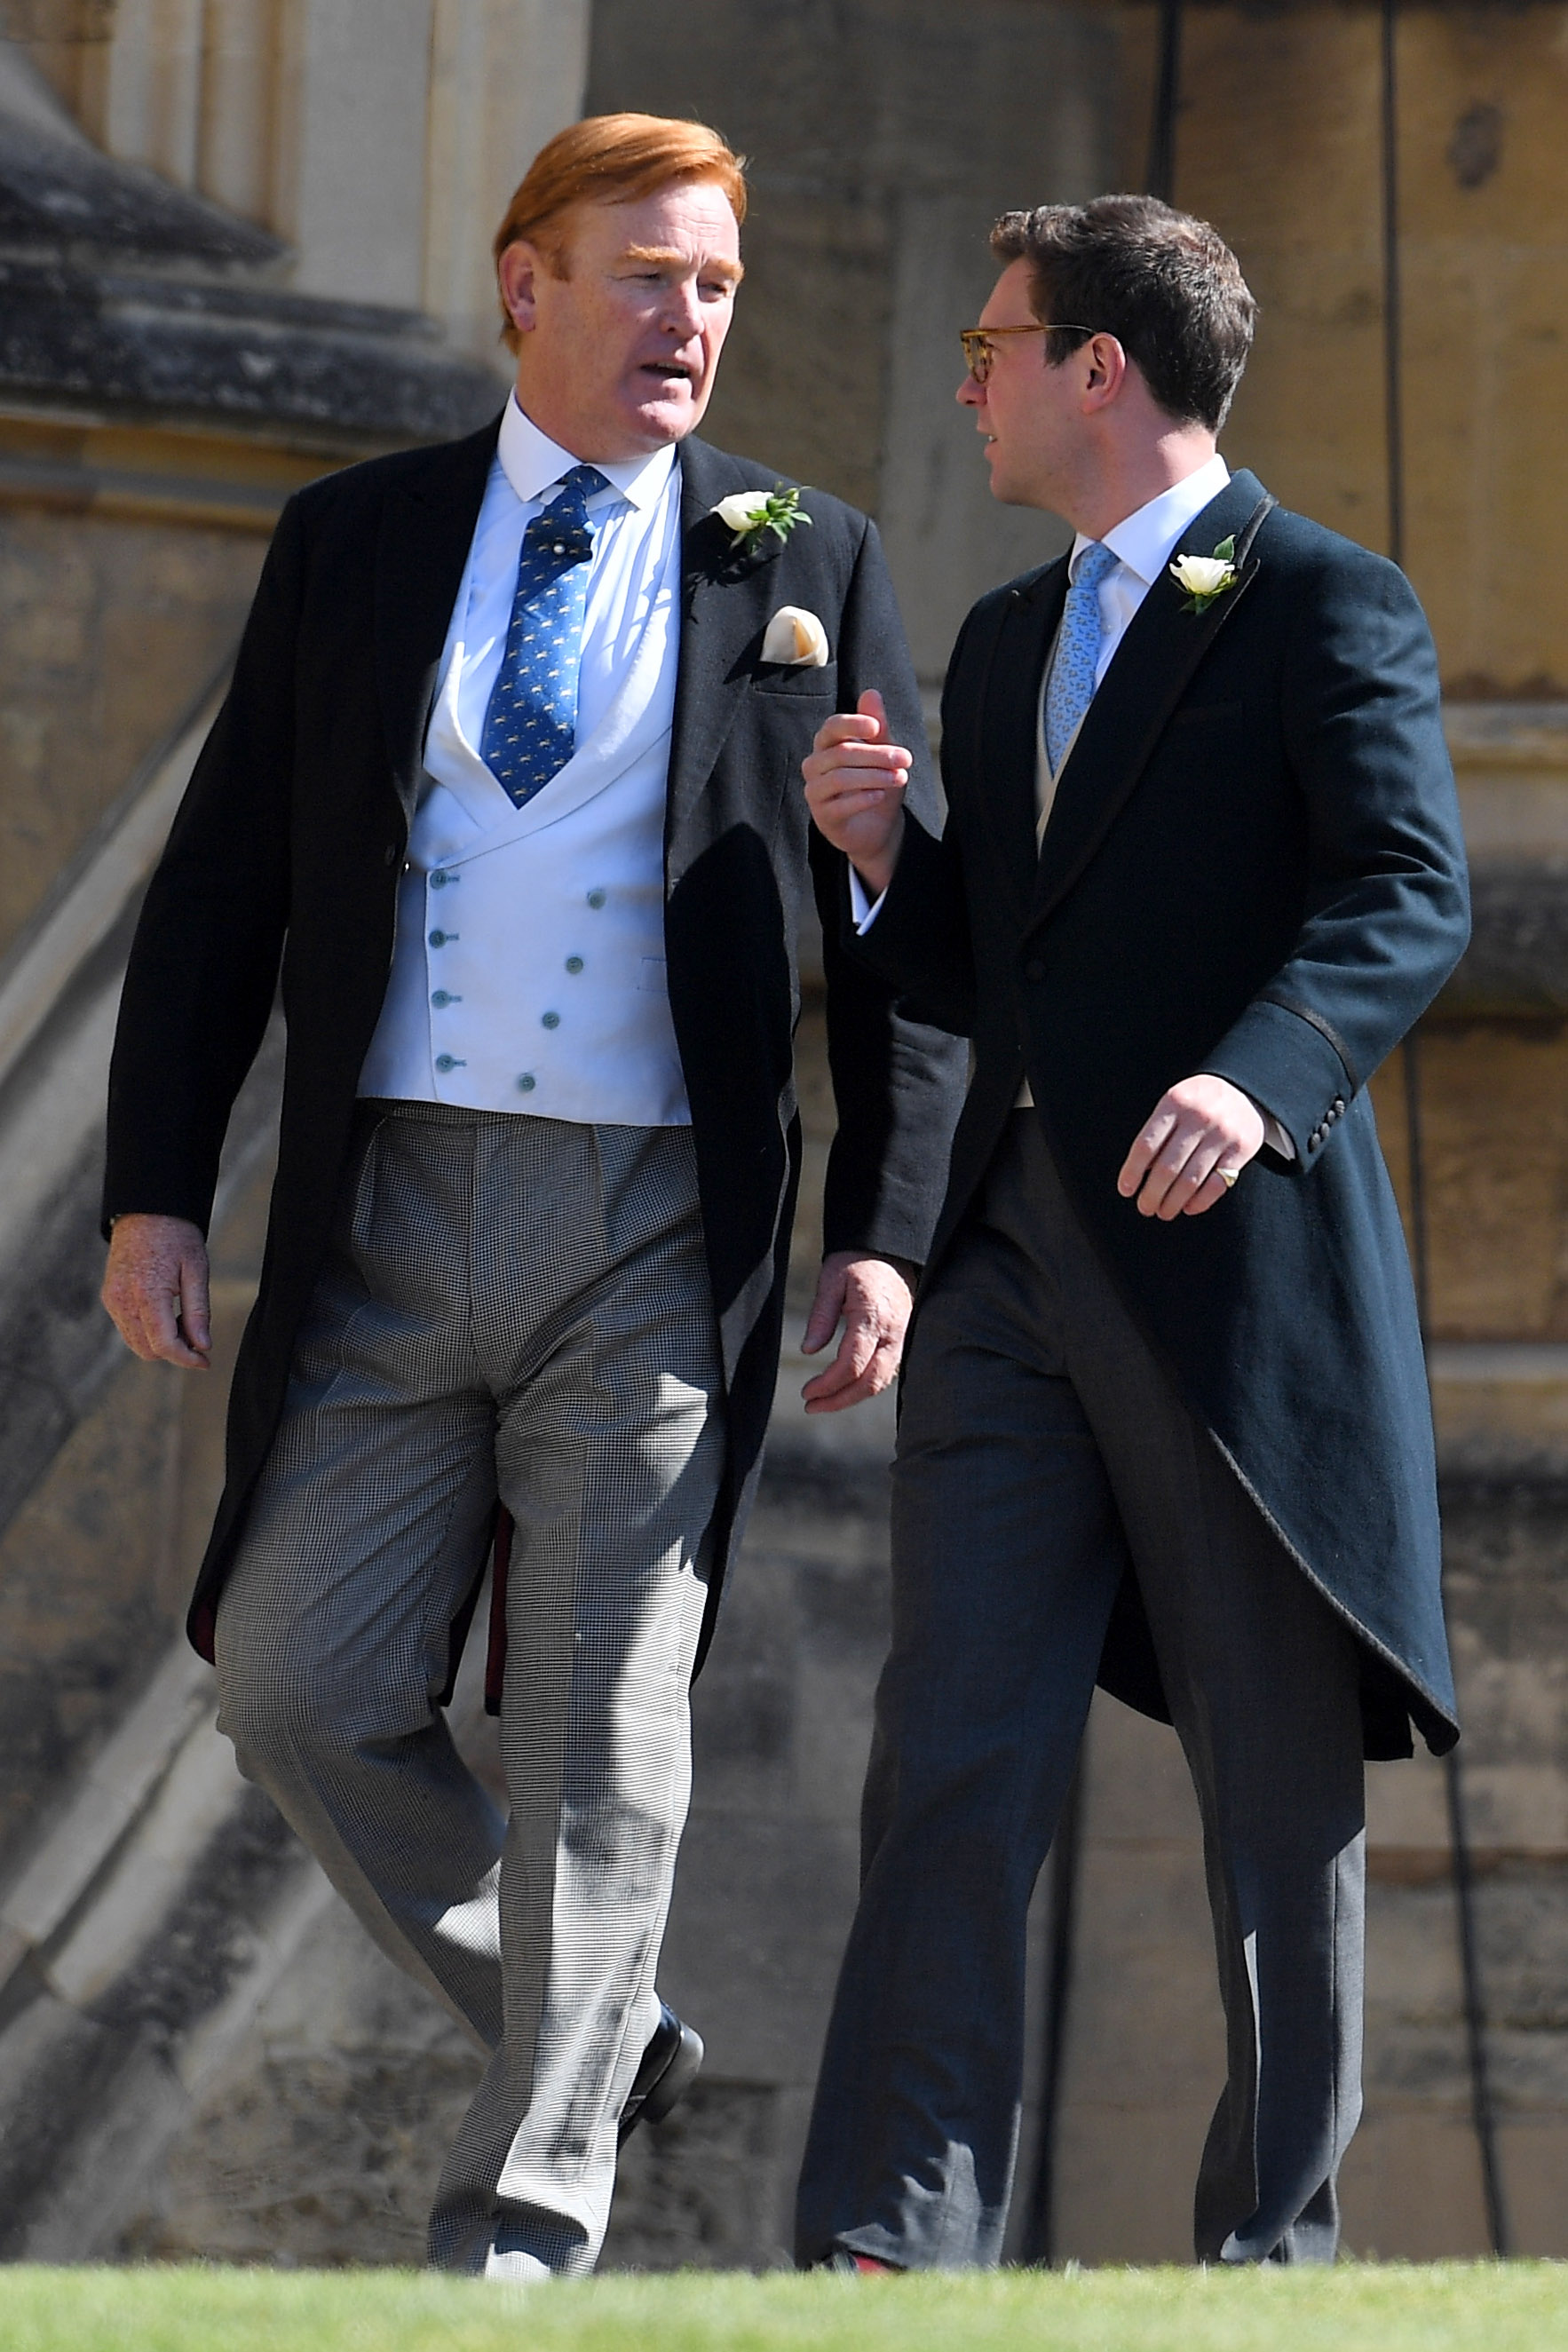 Mark DyerThe wedding of Prince Harry and Meghan Markle, Pre-Ceremony, Windsor, Berkshire, UK - 19 May 2018